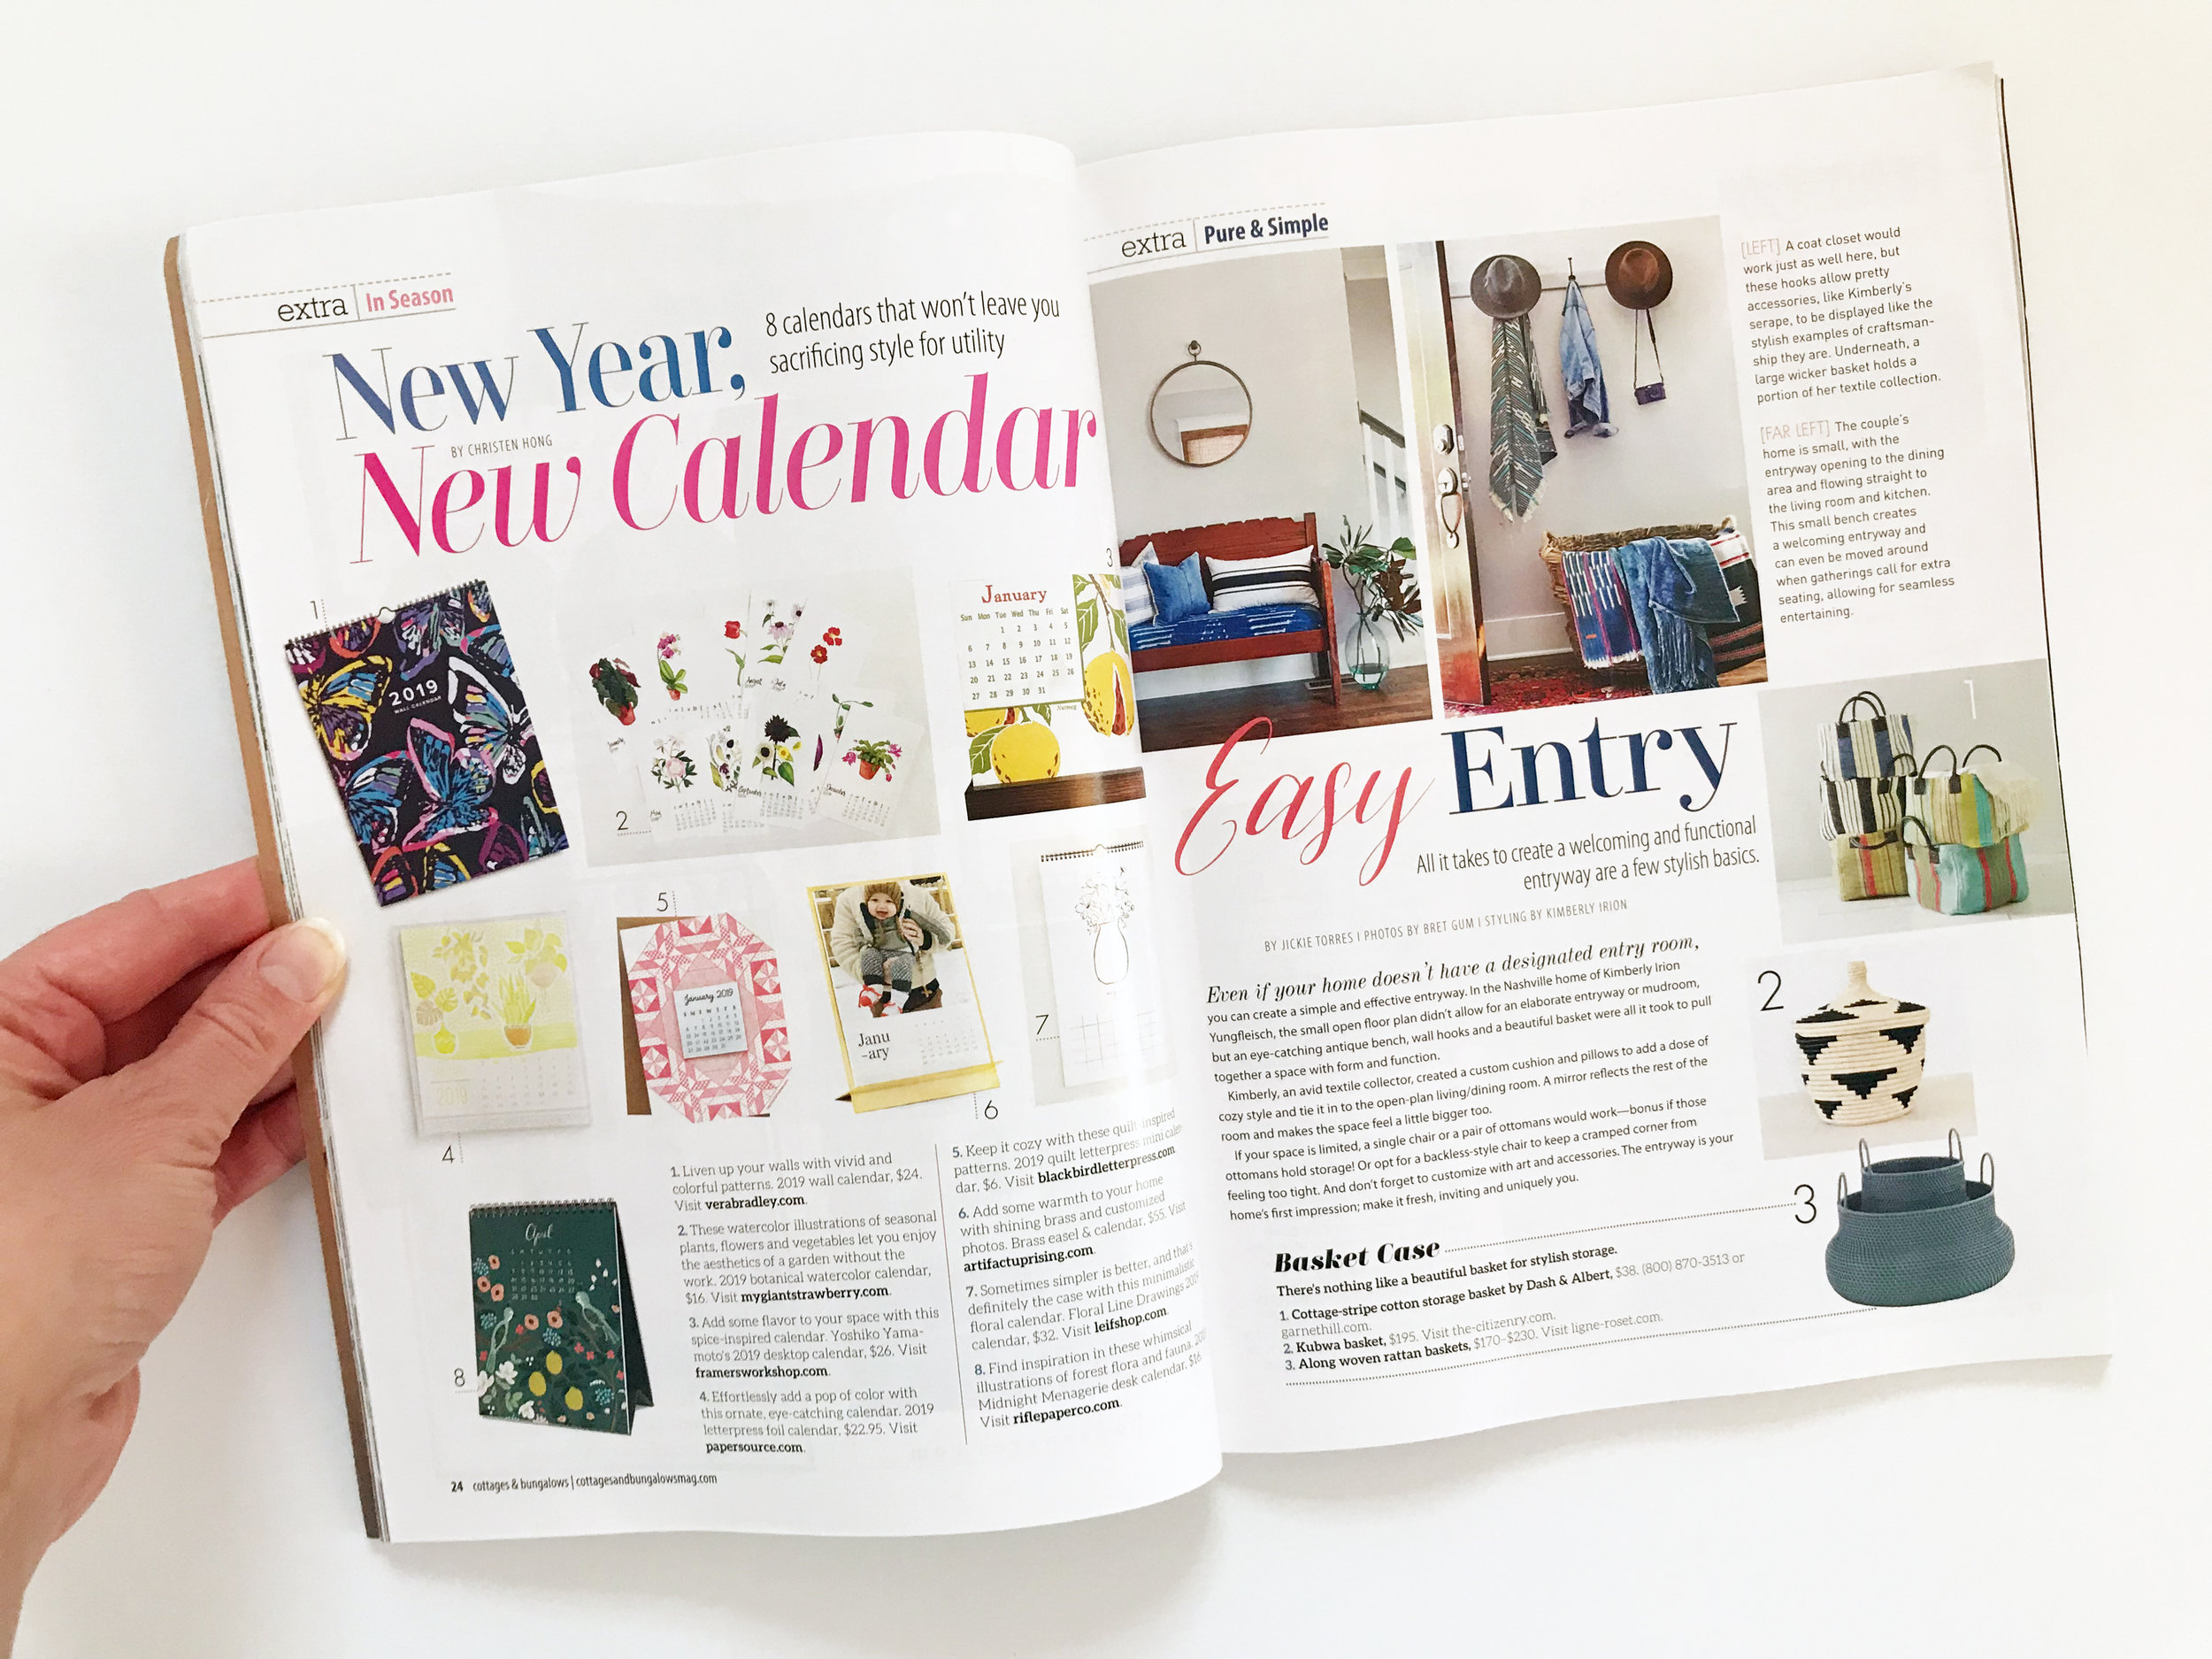 My 2019 Botanical Watercolor Calendar is Featured in the February/March 2019 Issue of Cottages and Bungalows Magazine